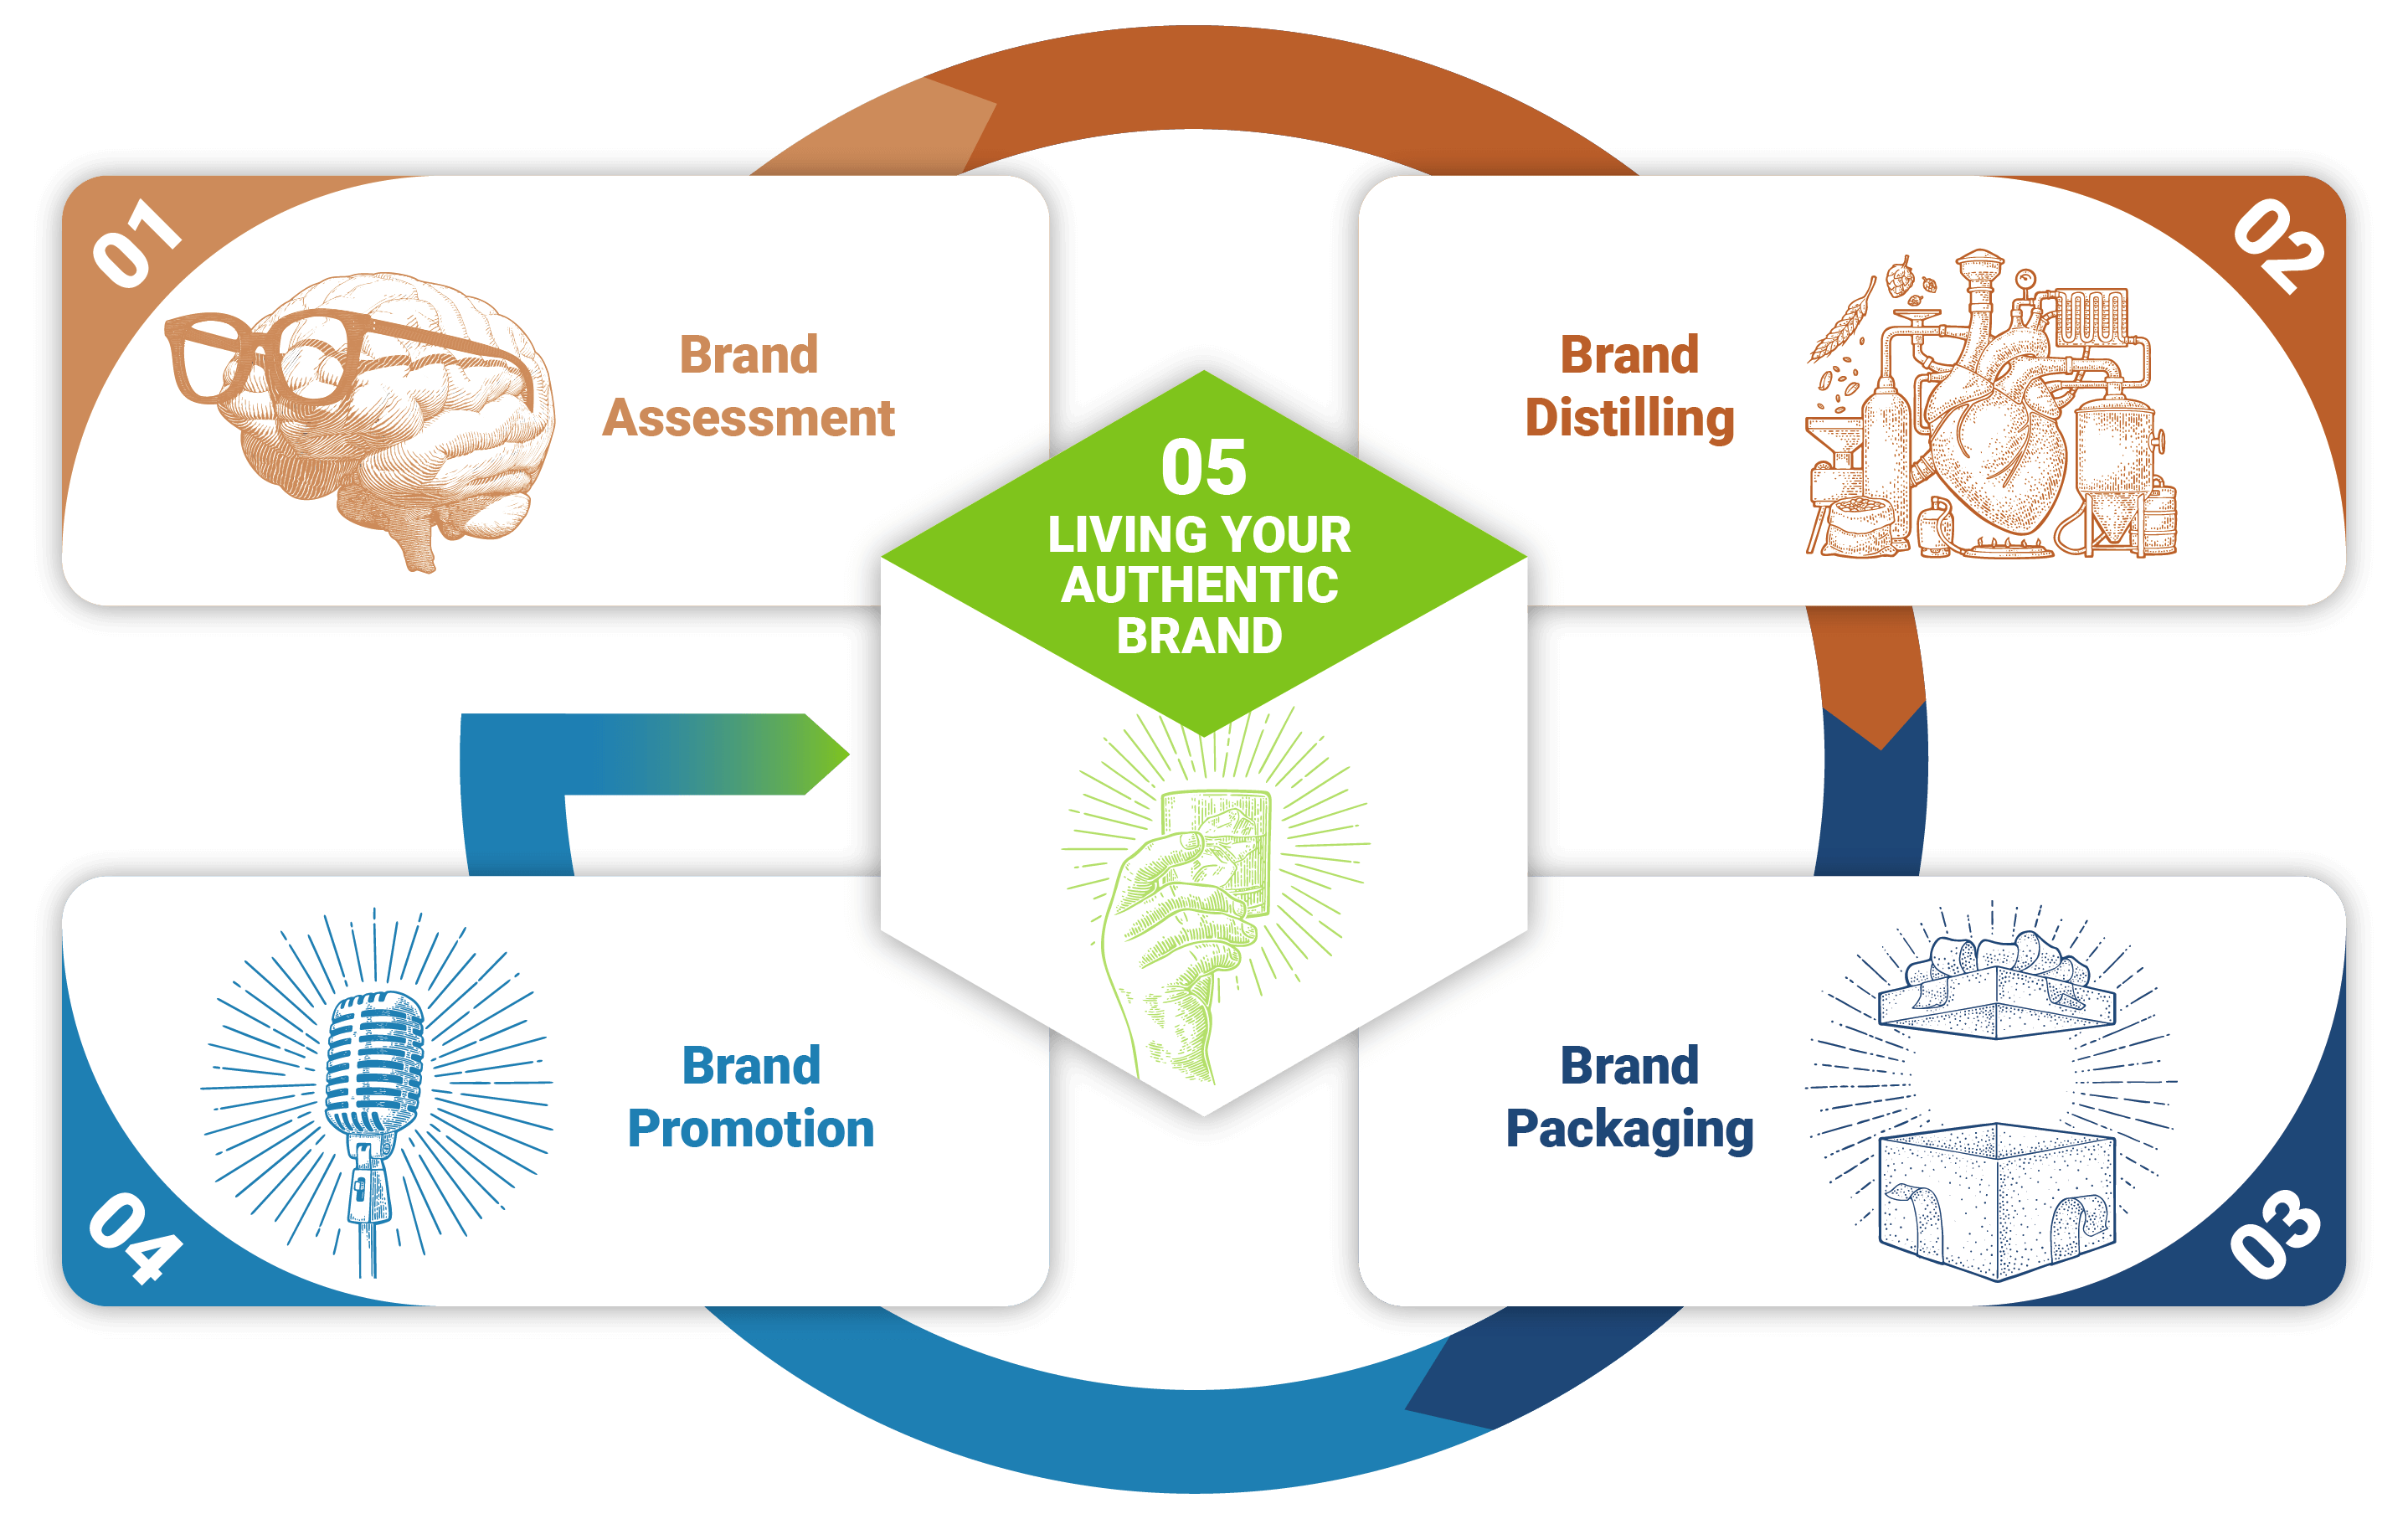 The Rebox Service Offering from Brand Assessment to Brand Distilling to Brand Packaging to Brand Promotion to the Full Brand Experience